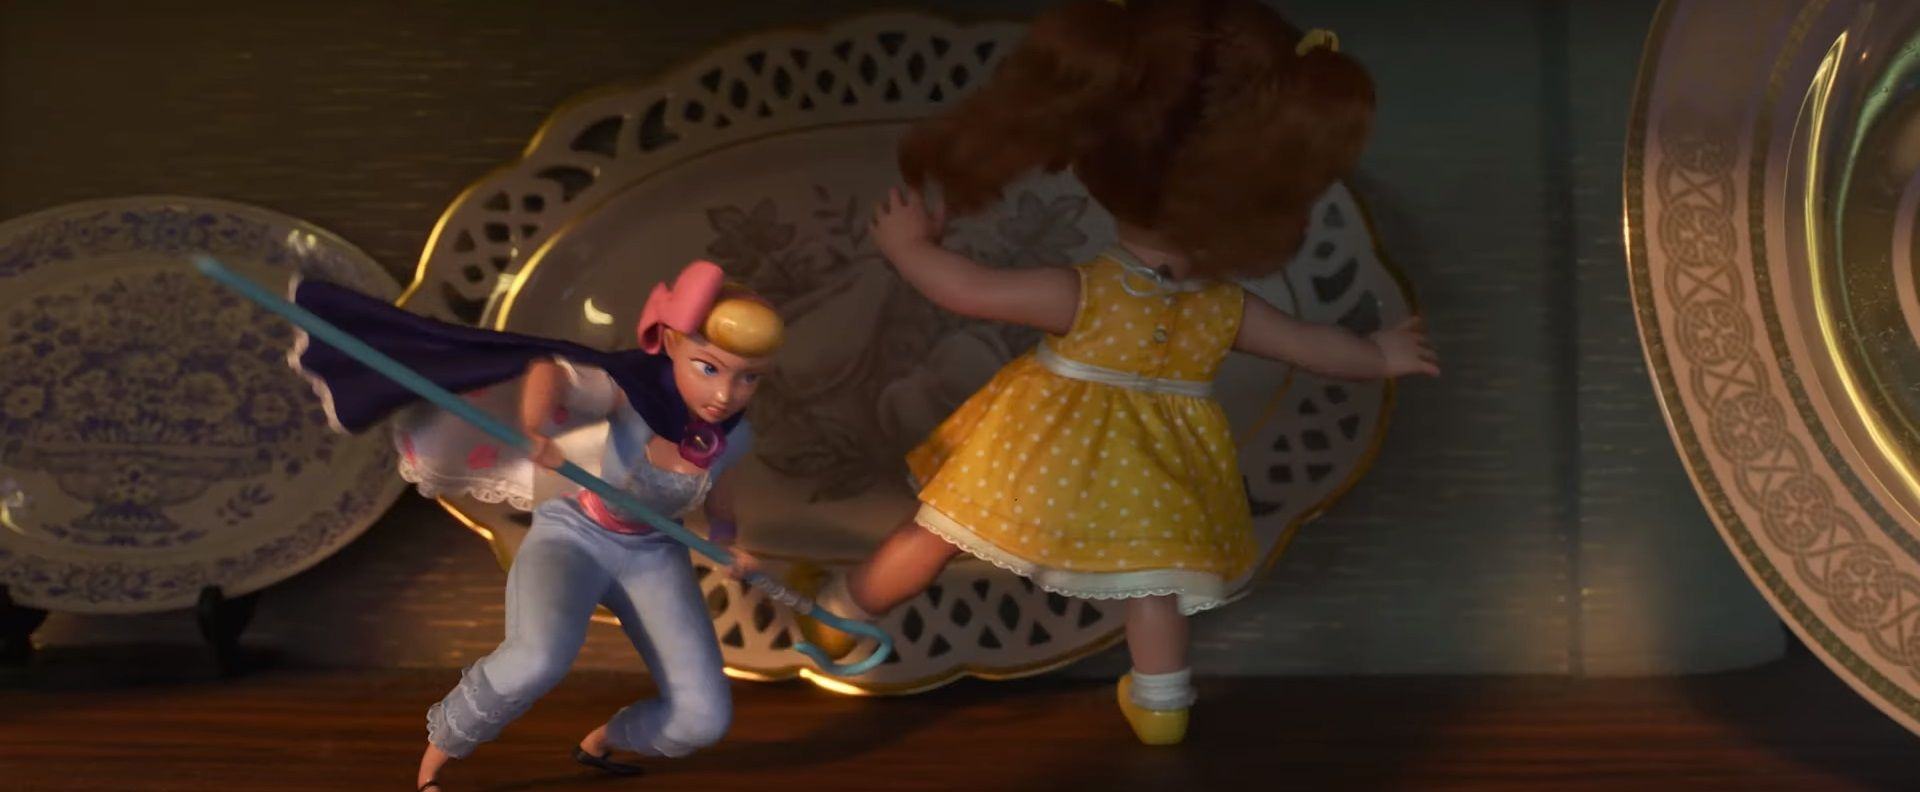 Toy Story 4 Check Out Nearly 50 Hi Res Screenshots From The Revealing First Full Length Trailer New Movies Toy Story Movie Photo